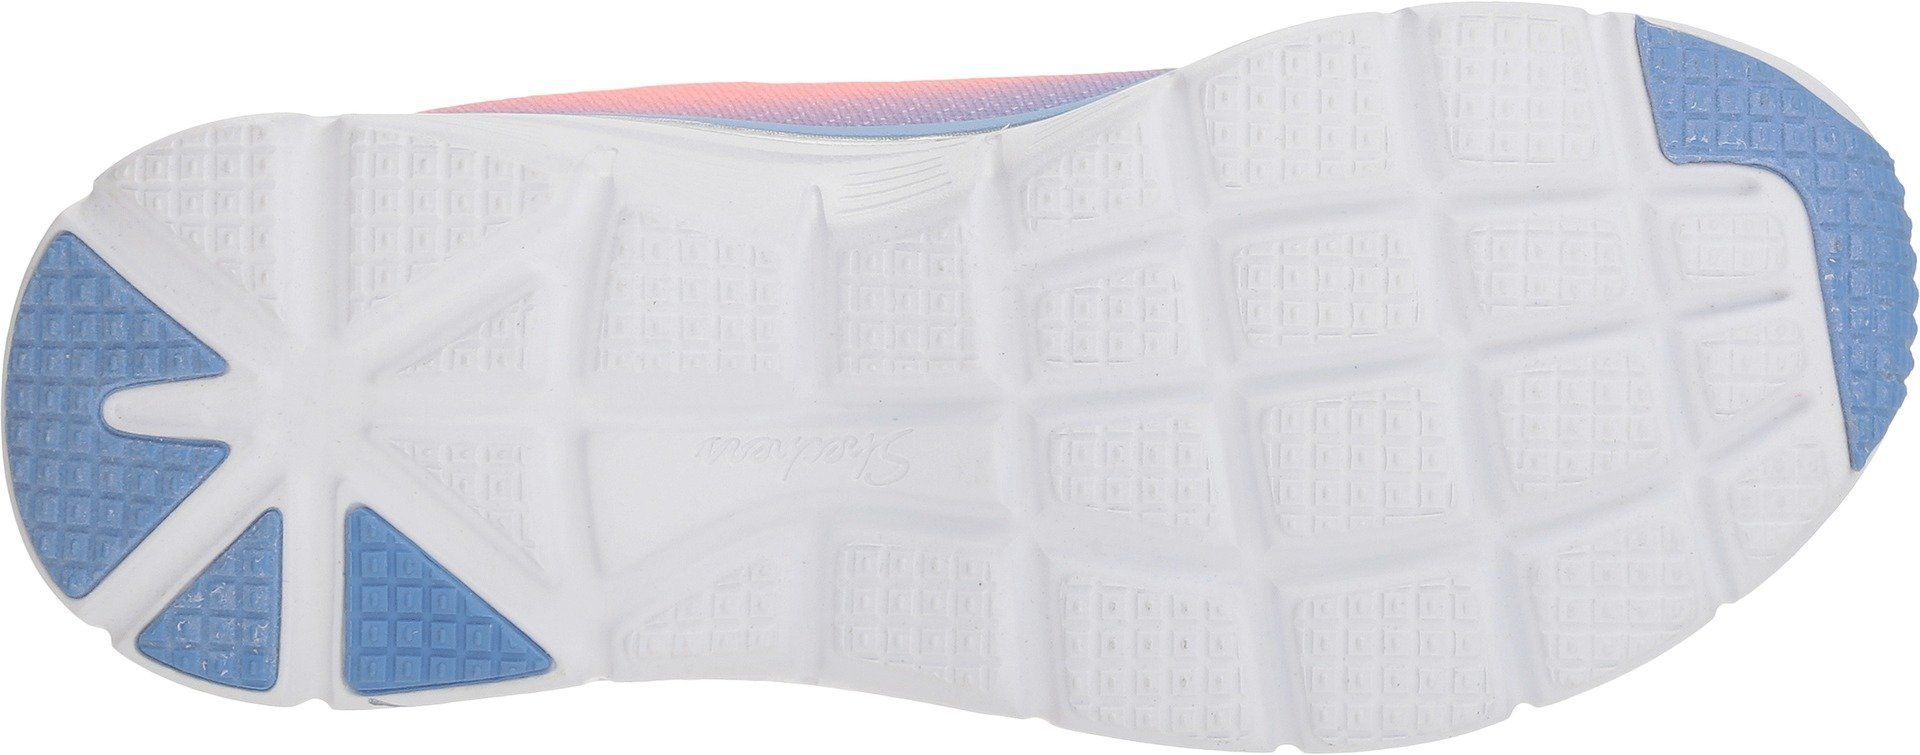 Skechers Womens Fashion Fit Build up Pink Lavender 6 B US